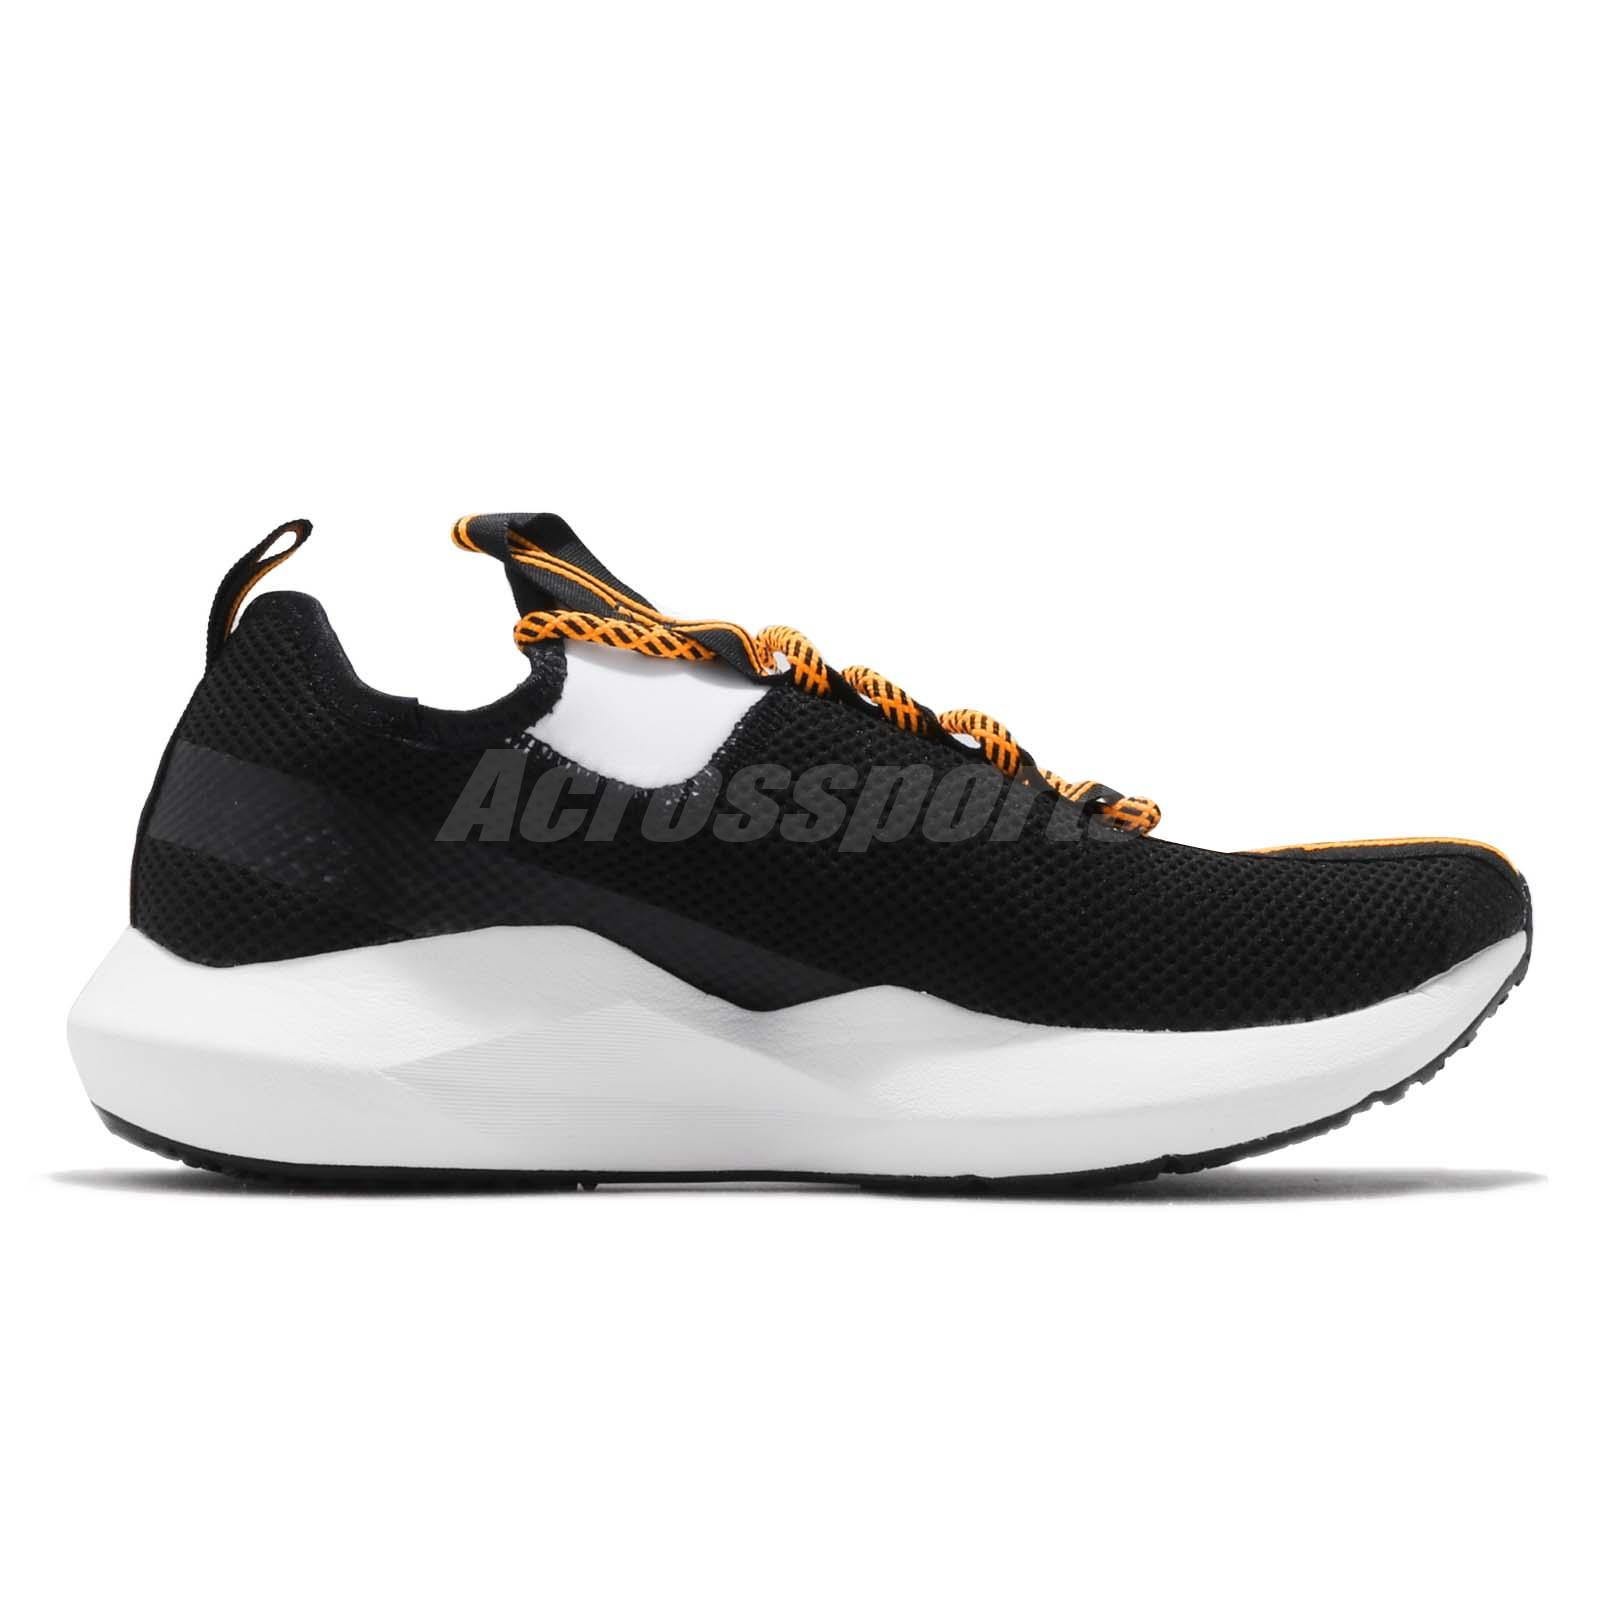 3afaf4a1b08 Reebok Sole Fury SE Black White Solar Gold Men Running Shoes ...